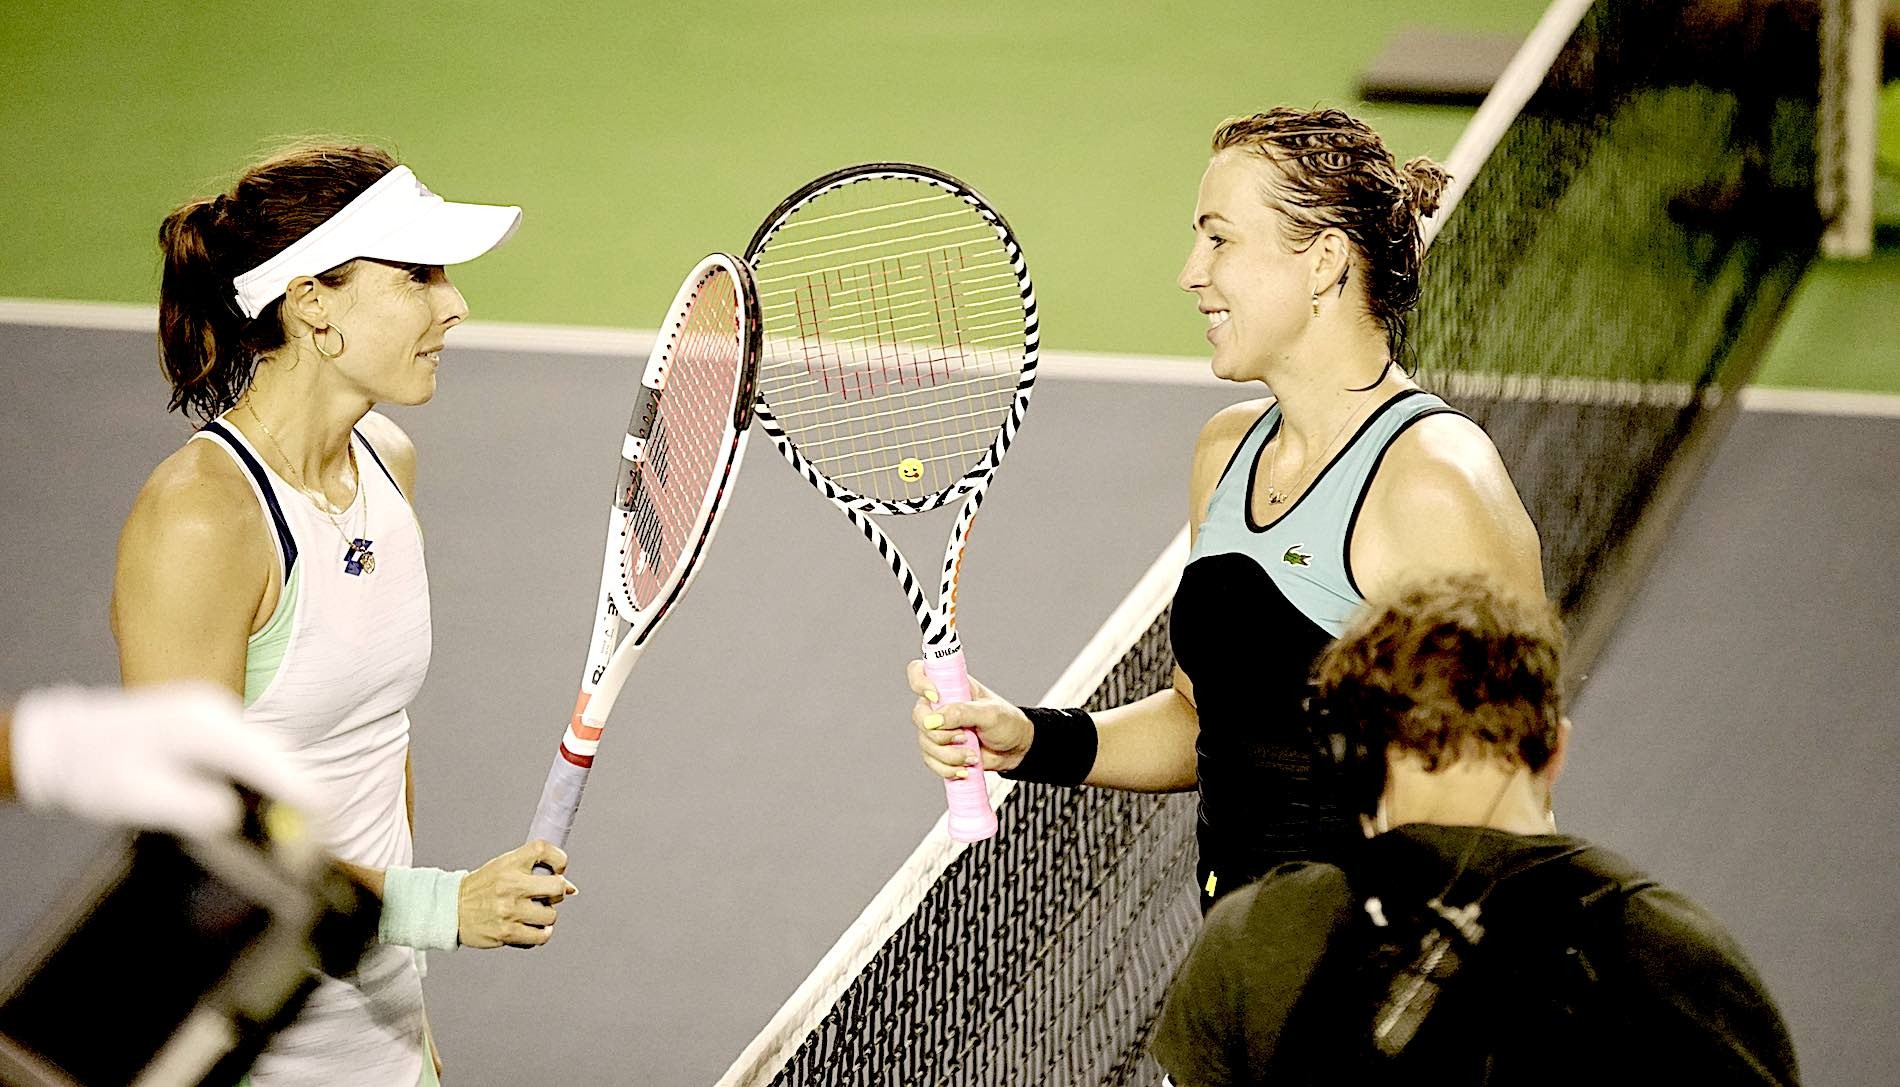 Alizé Cornet and Anastasia Pavlyunchenkova shakinh hands after UTS2 Final, August 2020